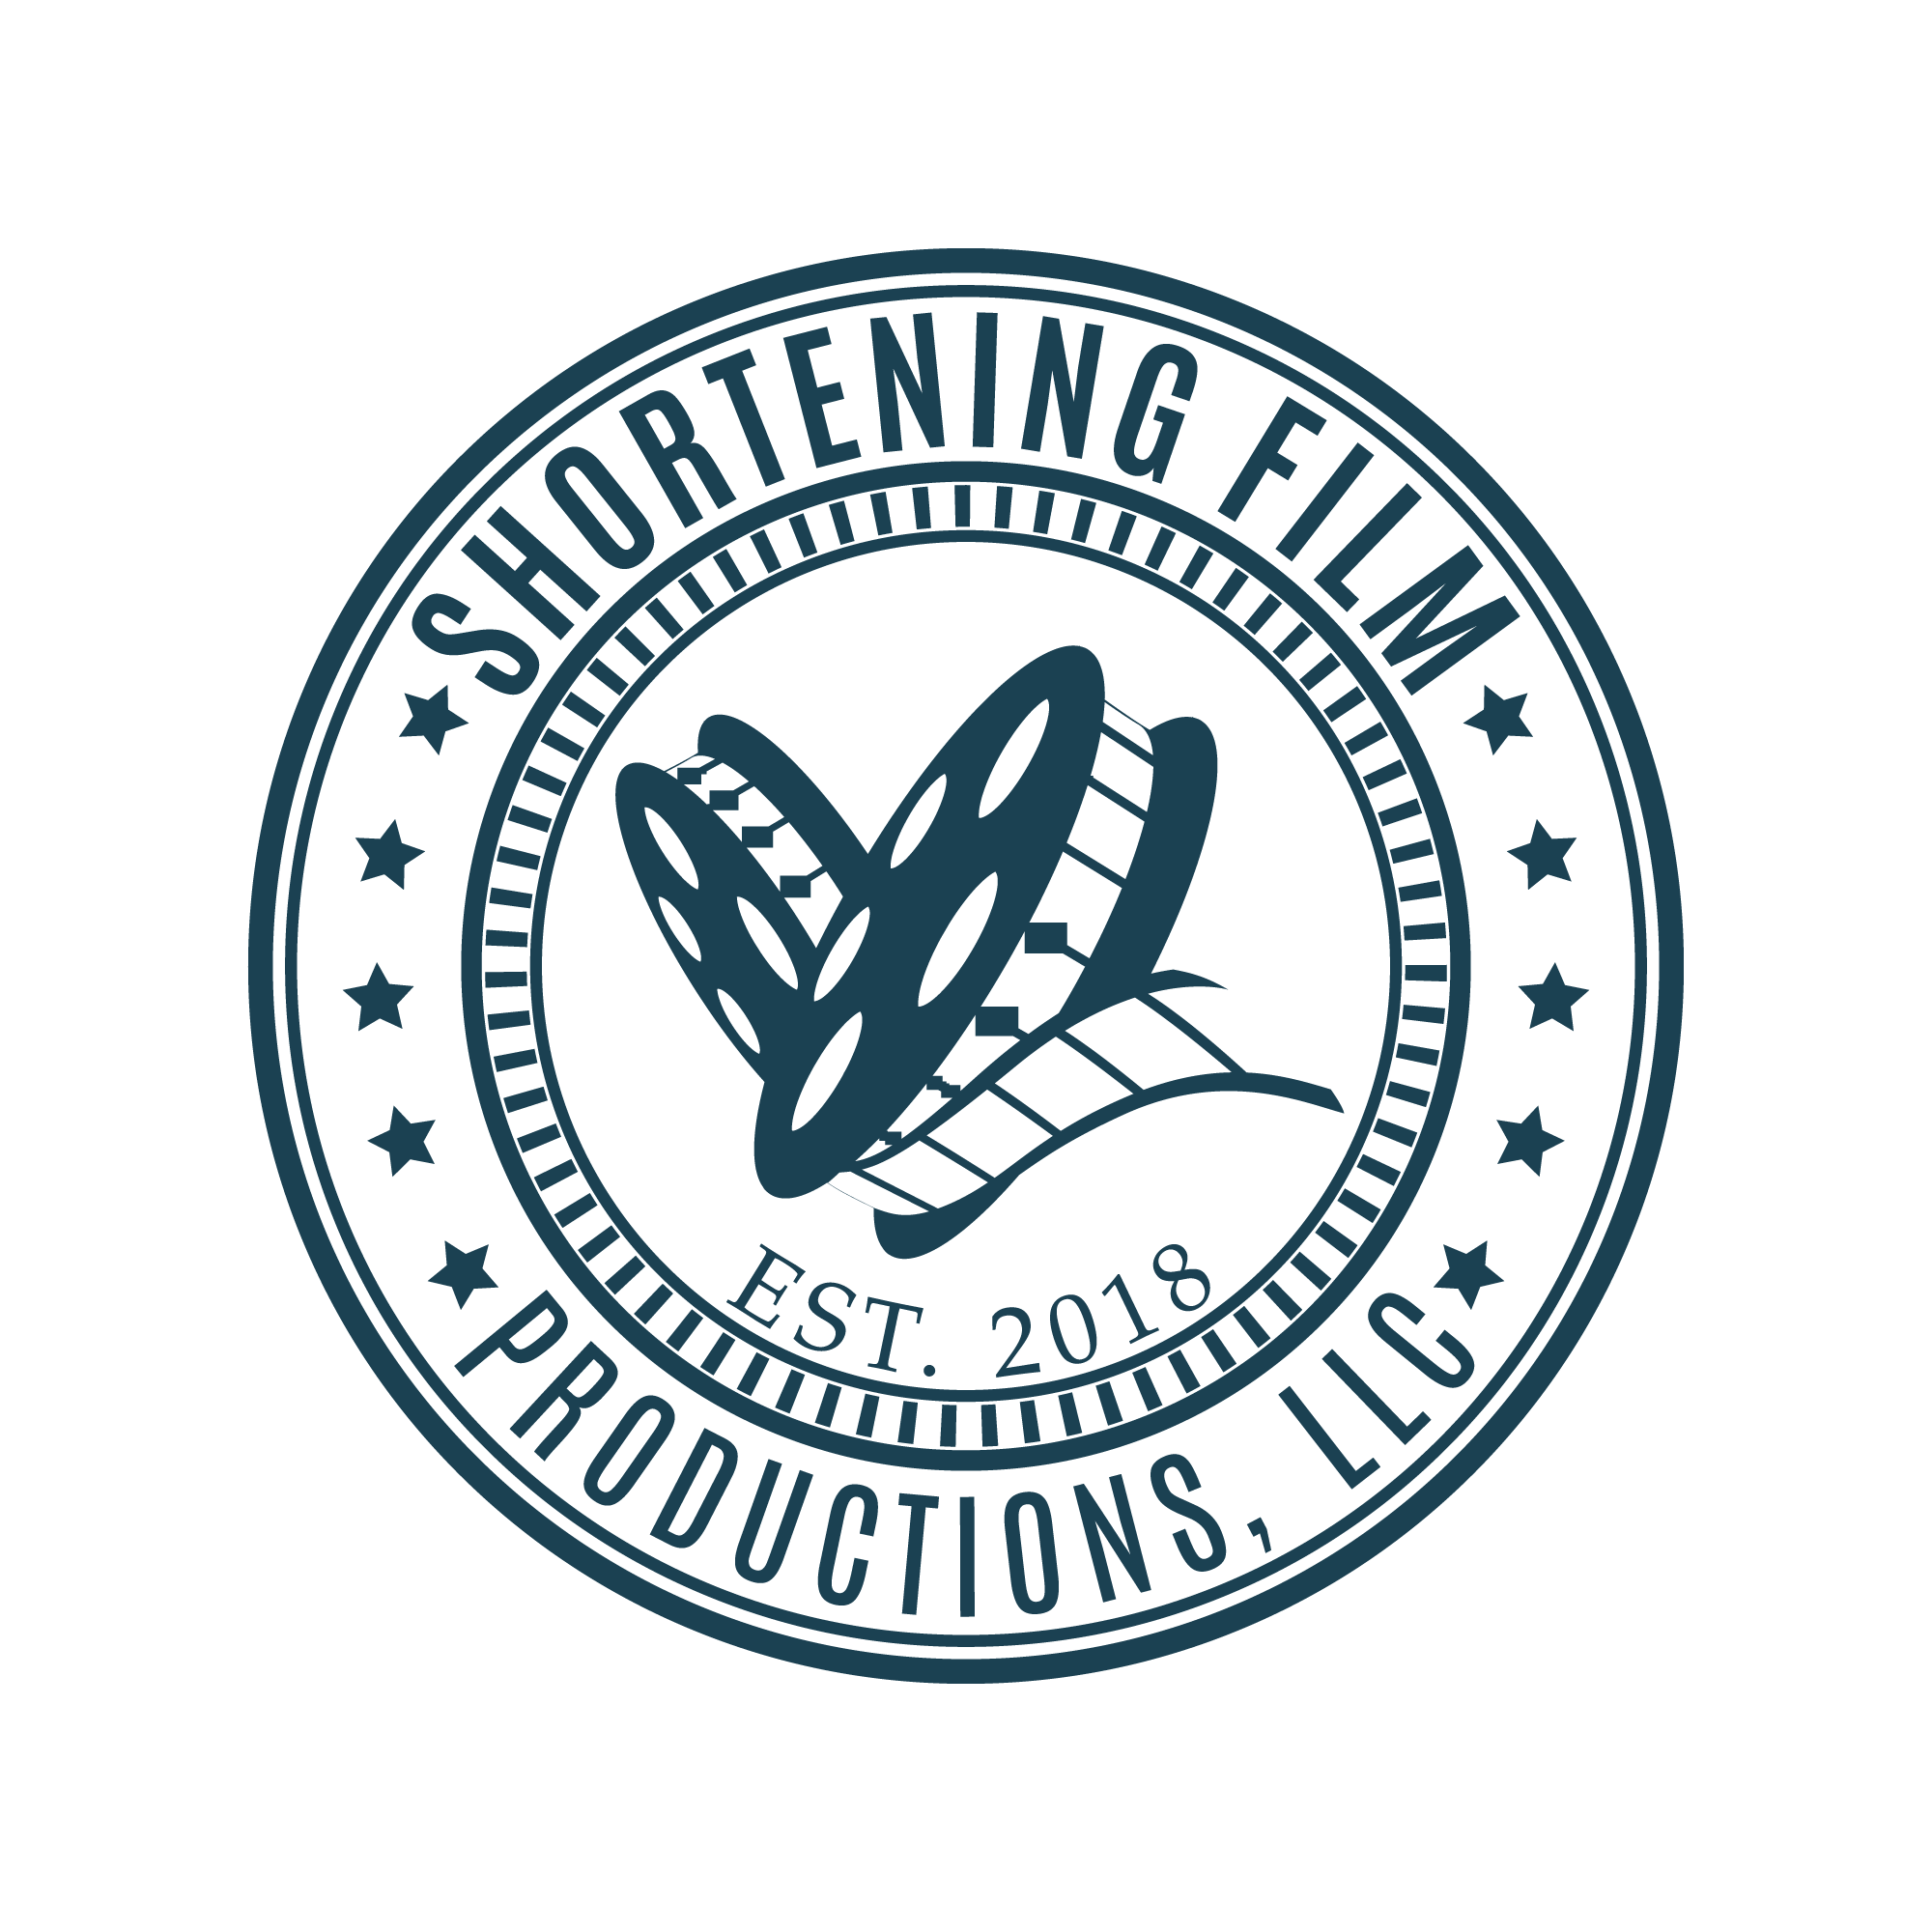 Shortening Film Productions, LLC